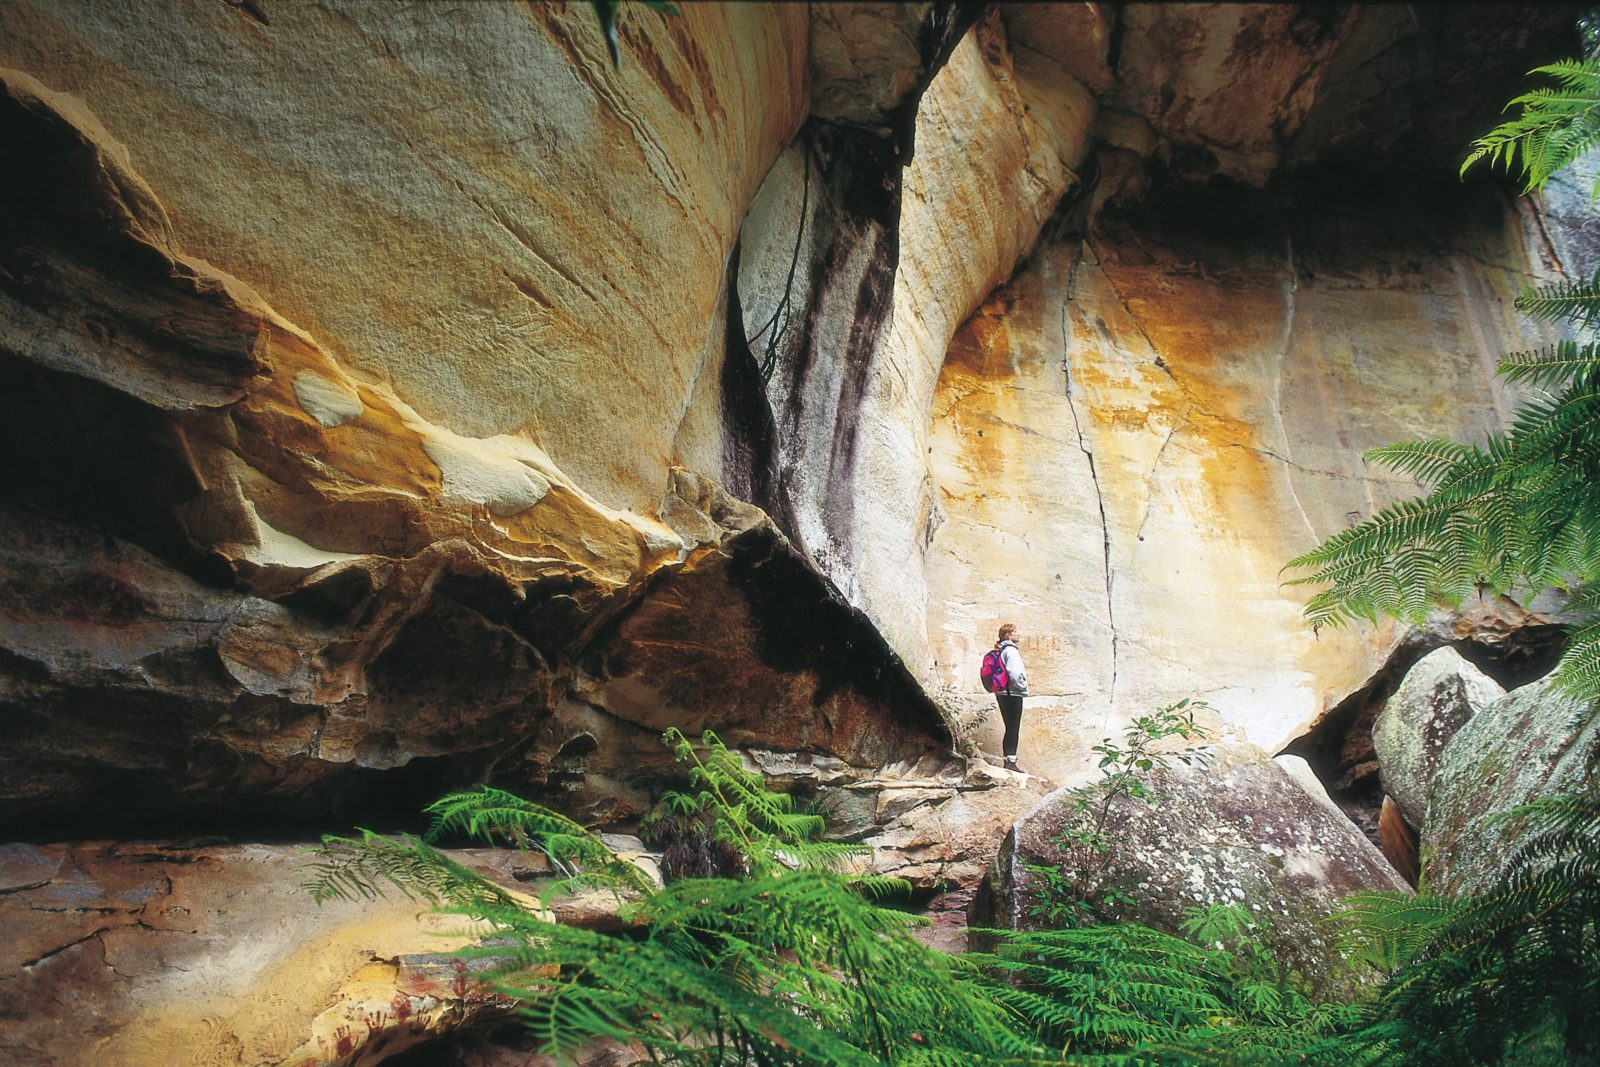 Person standing near sandstone cliff face in Cania Gorge National Park